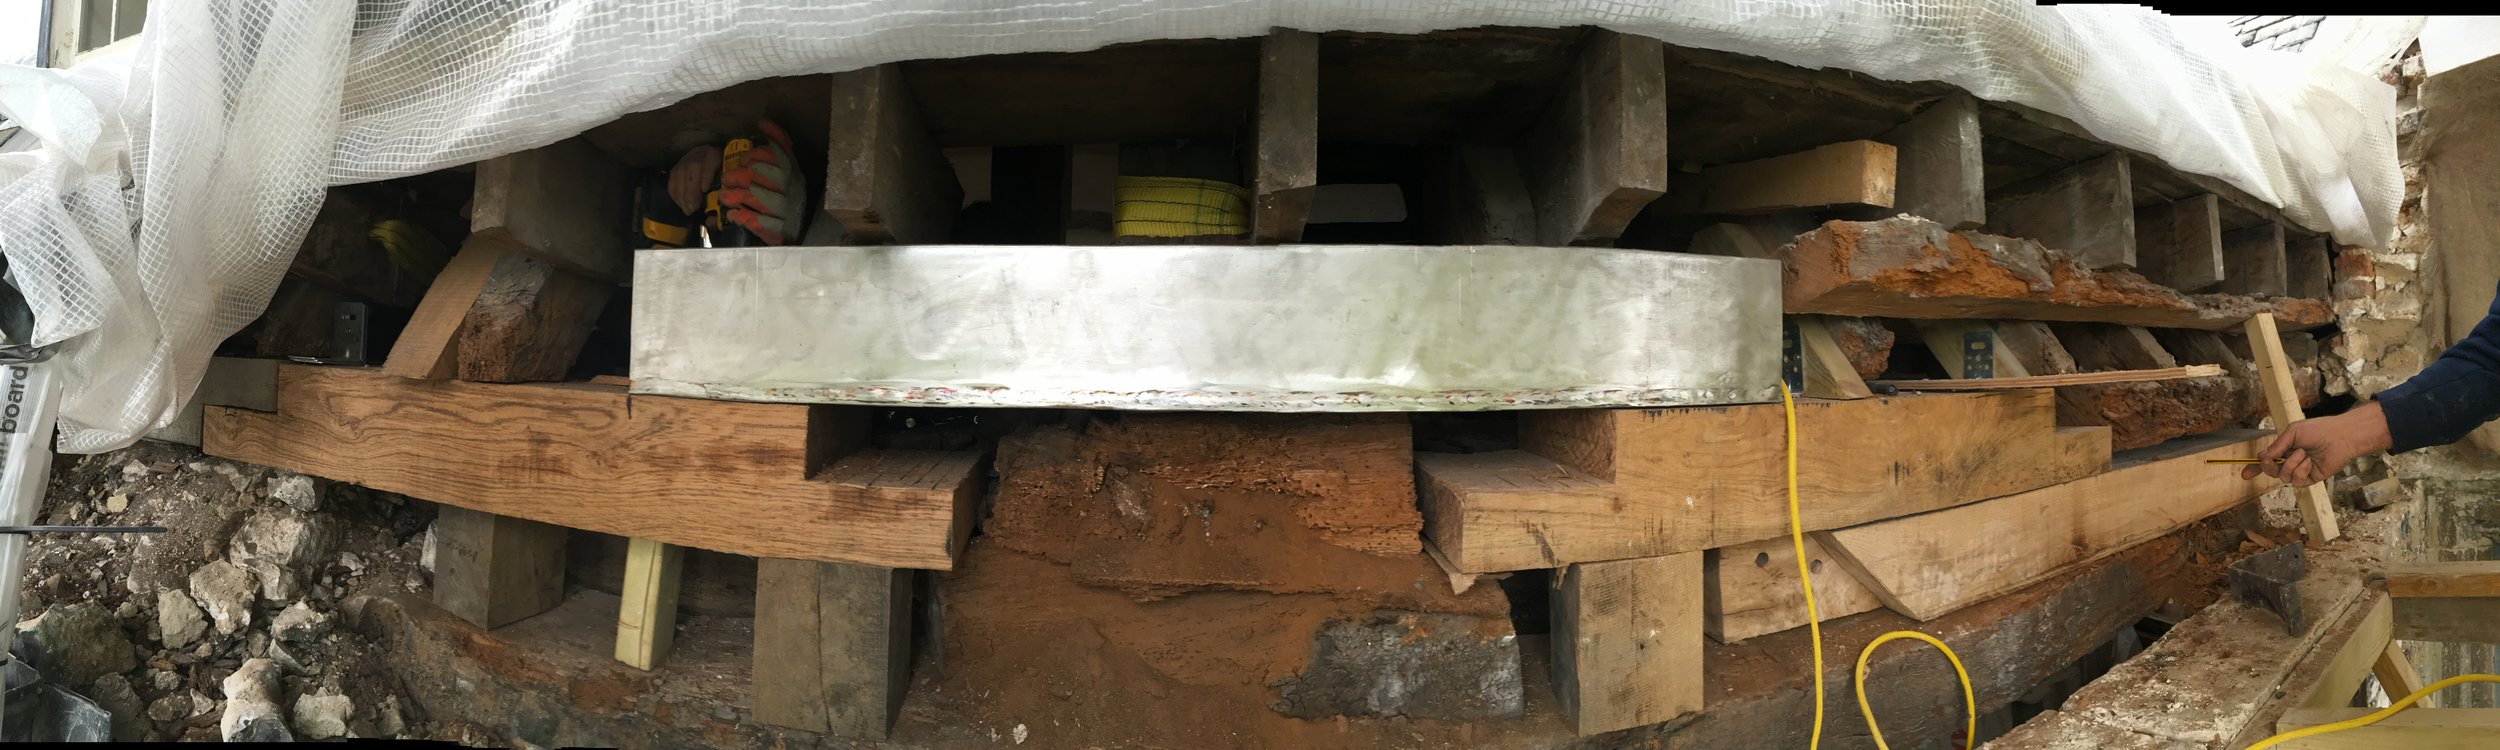 Glynde Place - Phase II - Wall plate being replaced.JPG